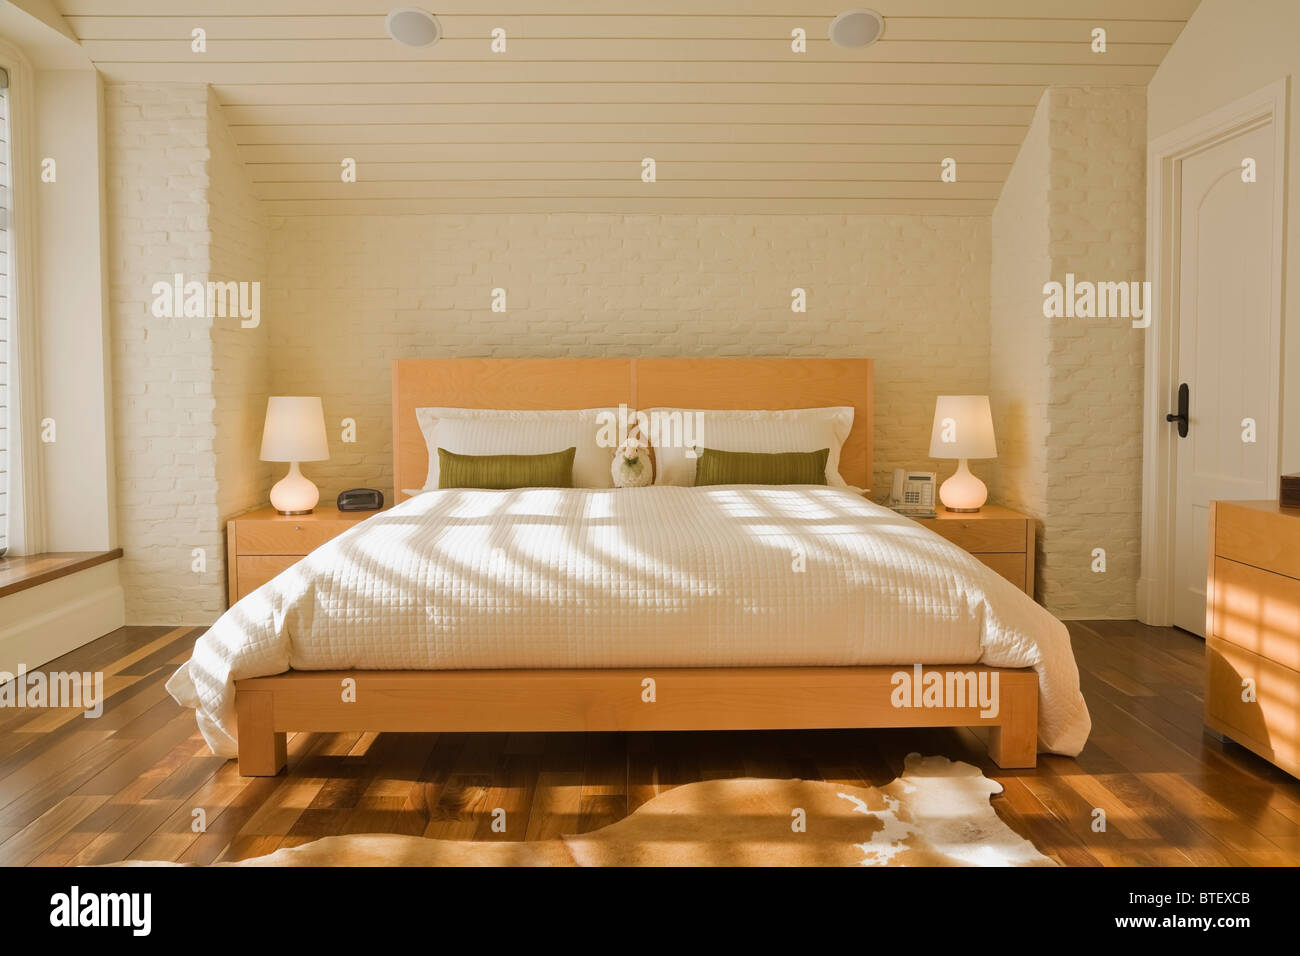 Master Bedroom with King Size Bed in Luxurious Home - Stock Image